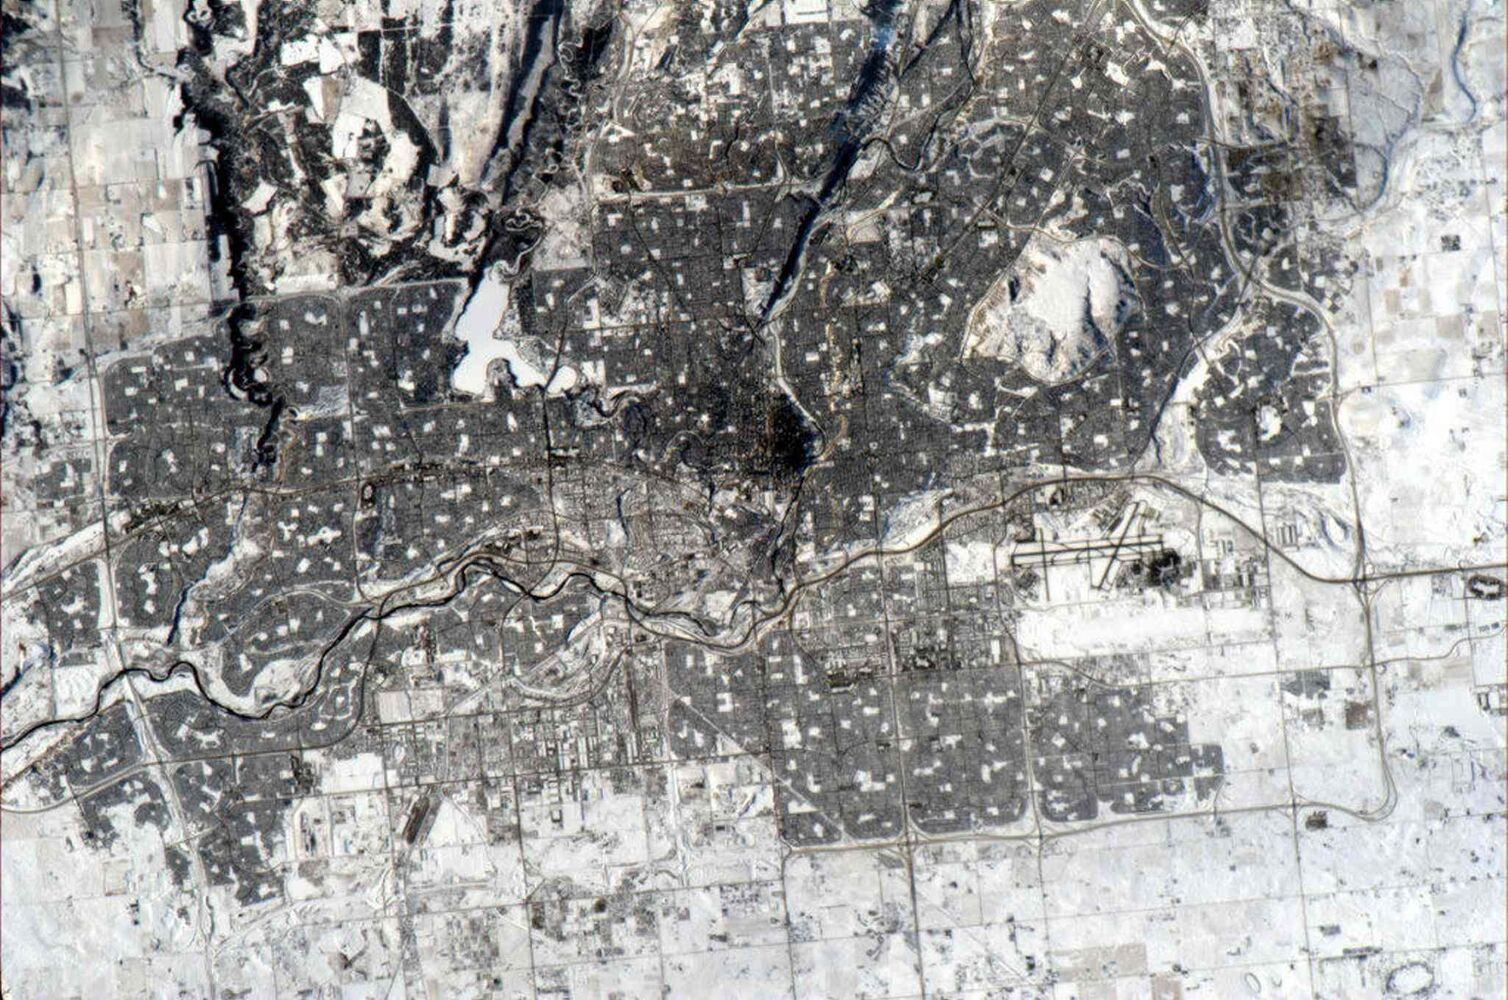 Calgary is pictured from space on a clear winter's day on Jan. 3, 2013, in a photo posted on Twitter by Canadian astronaut Chris Hadfield. (Chris Hadfield / NASA / The Canadian Press archives)